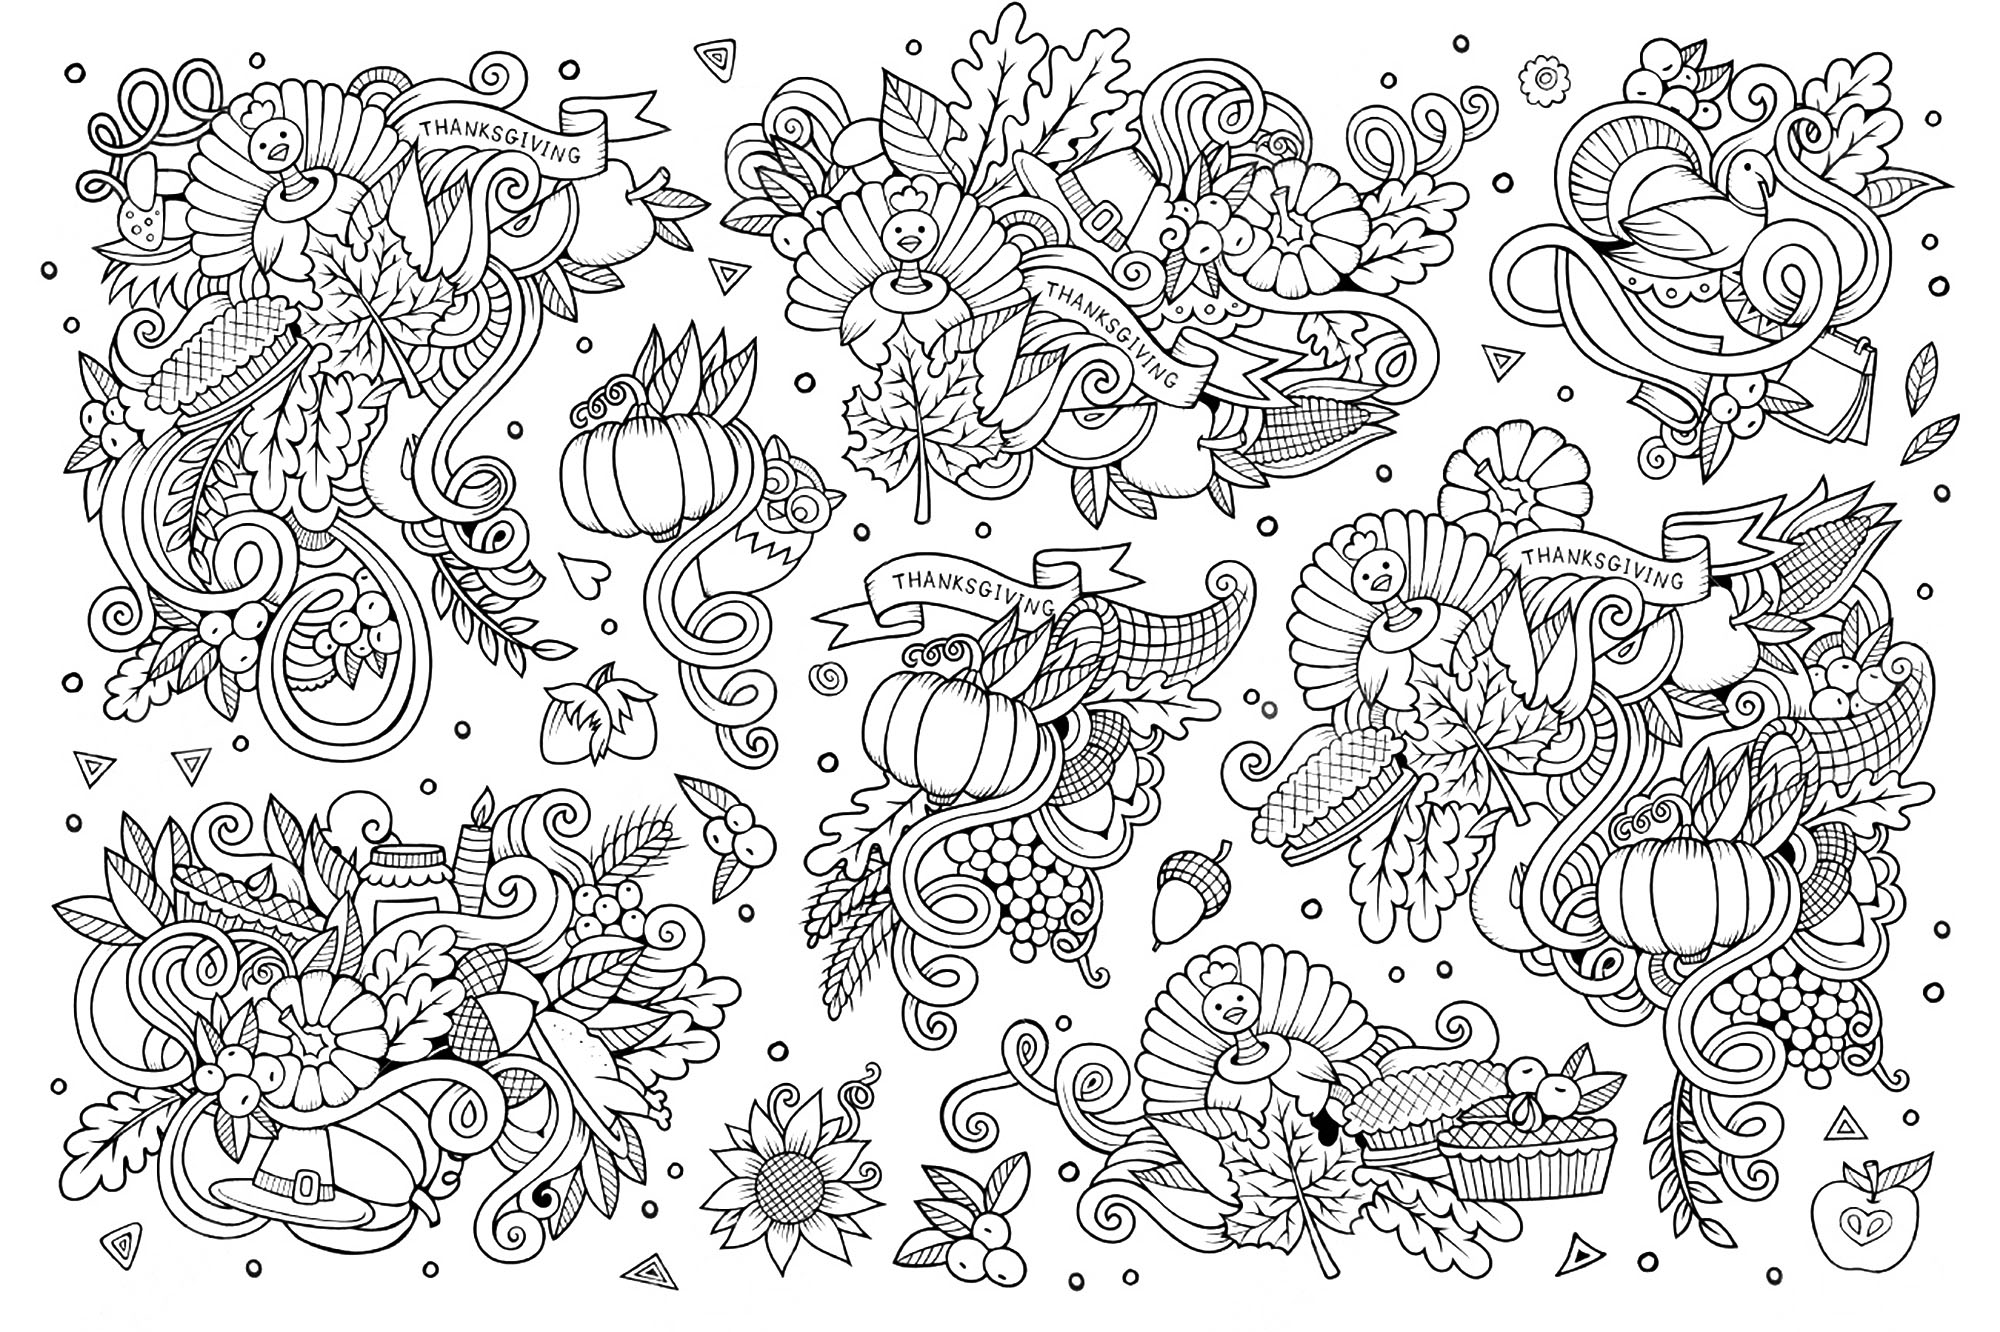 Sketchy vector hand drawn Doodle cartoon set of